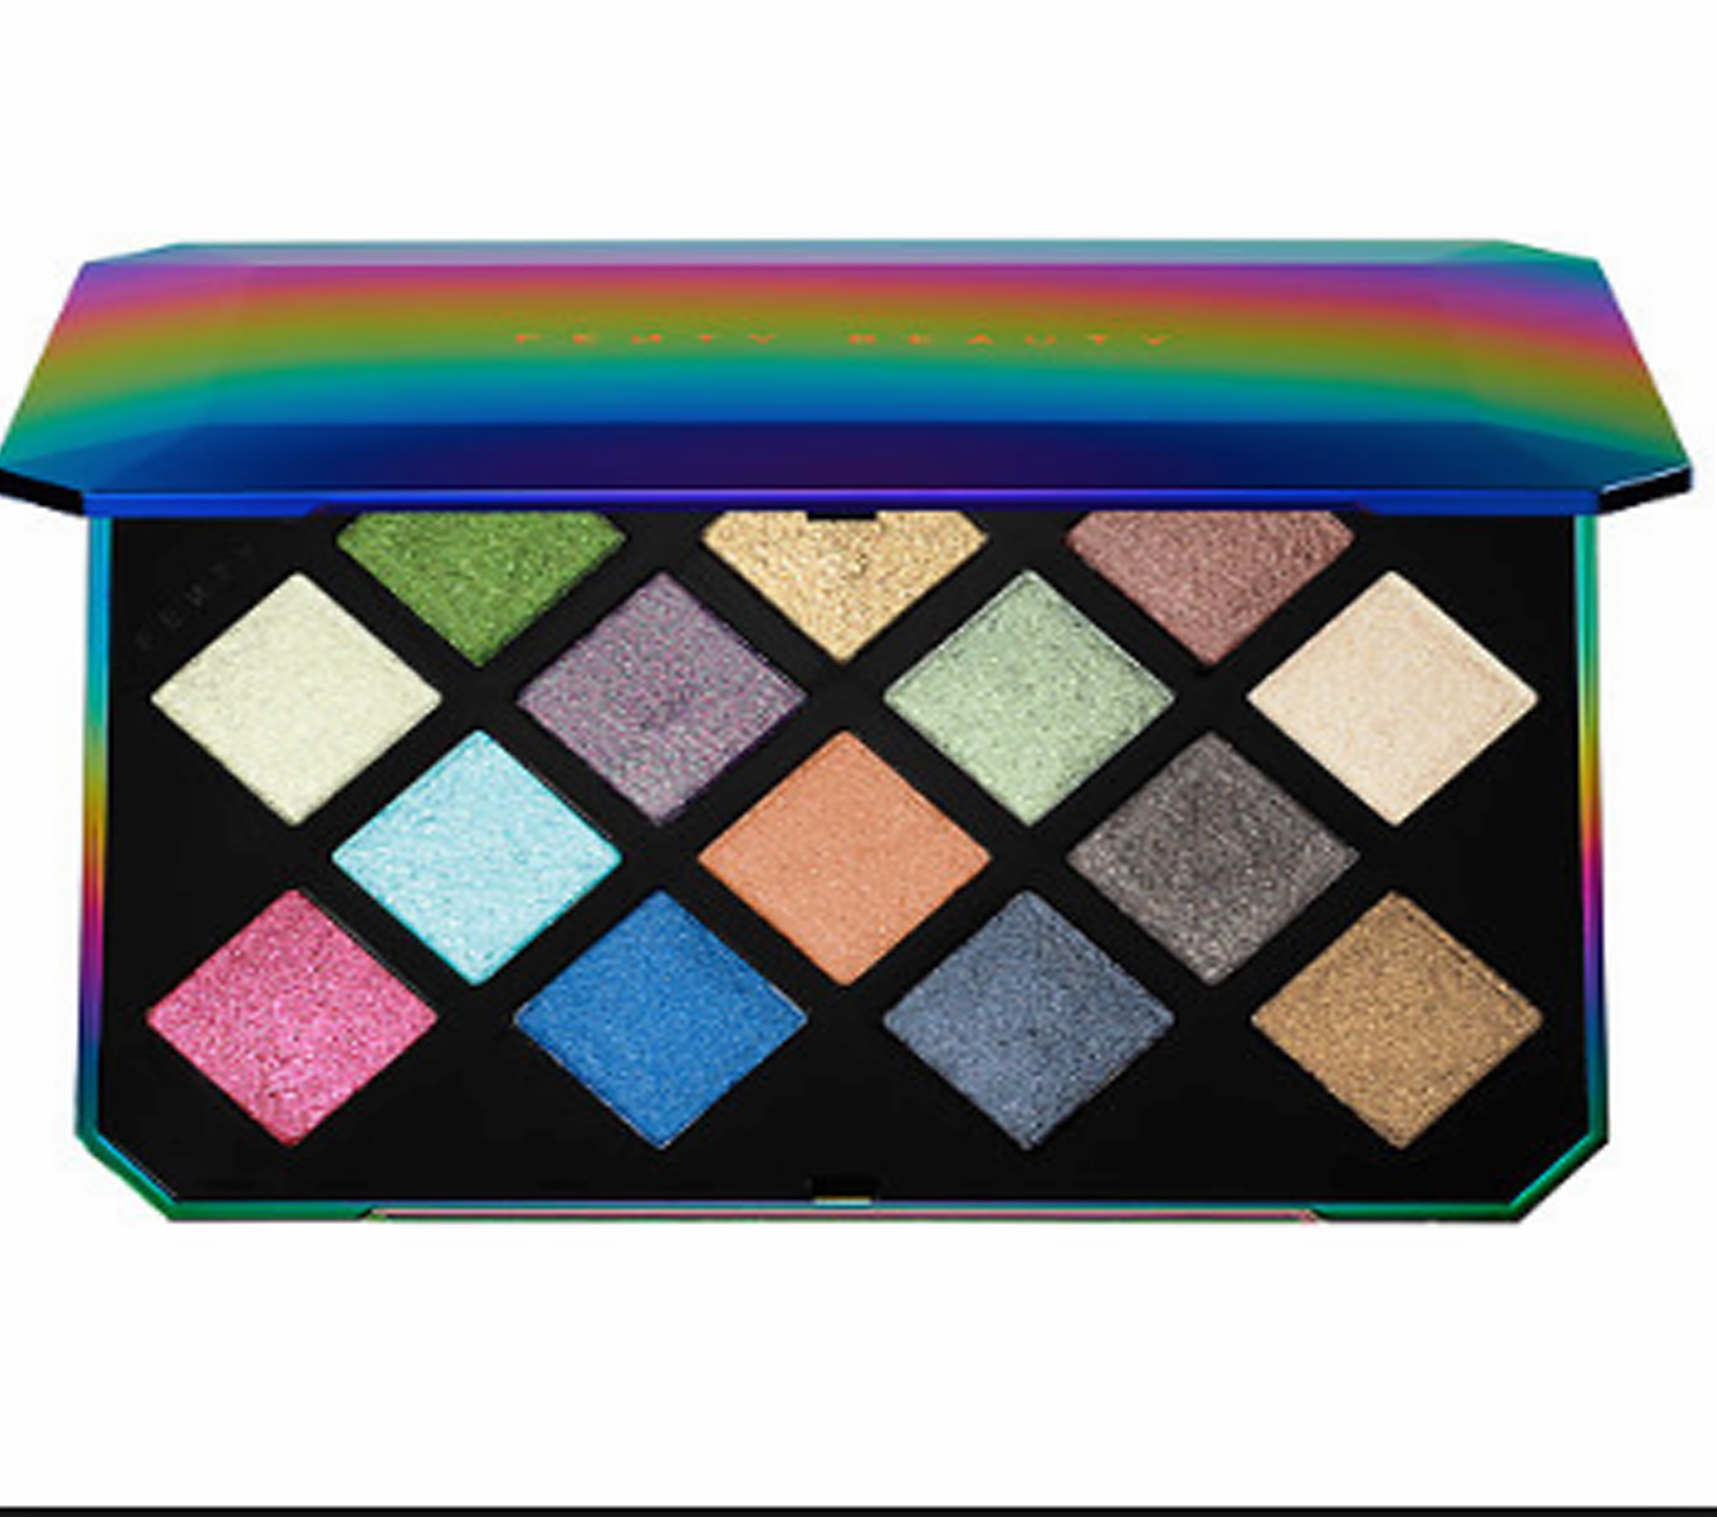 Galaxy Eyeshadow pallette.jpg